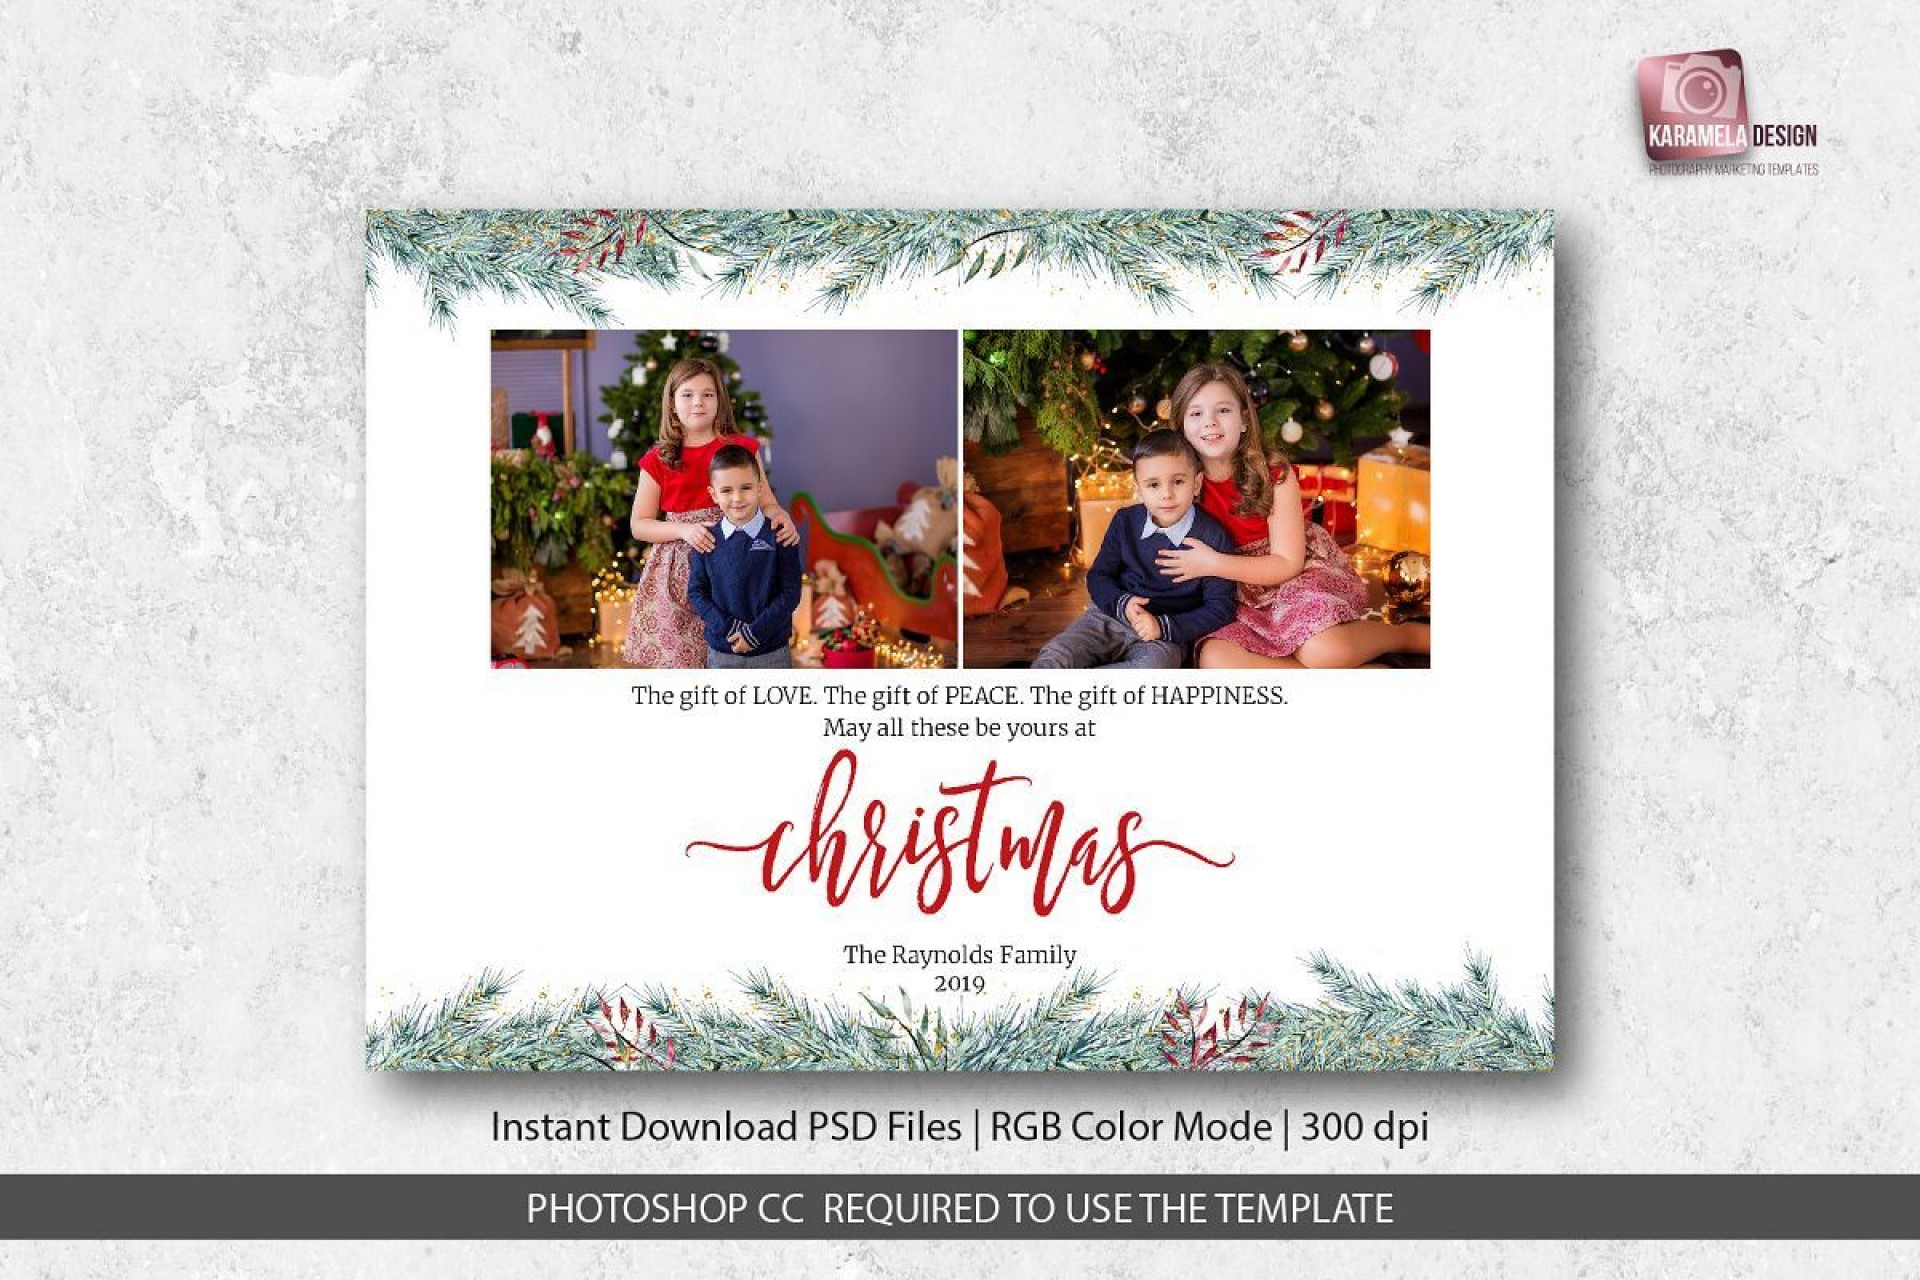 004 Archaicawful Christma Card Template Photoshop Image  Free Download Funny1920